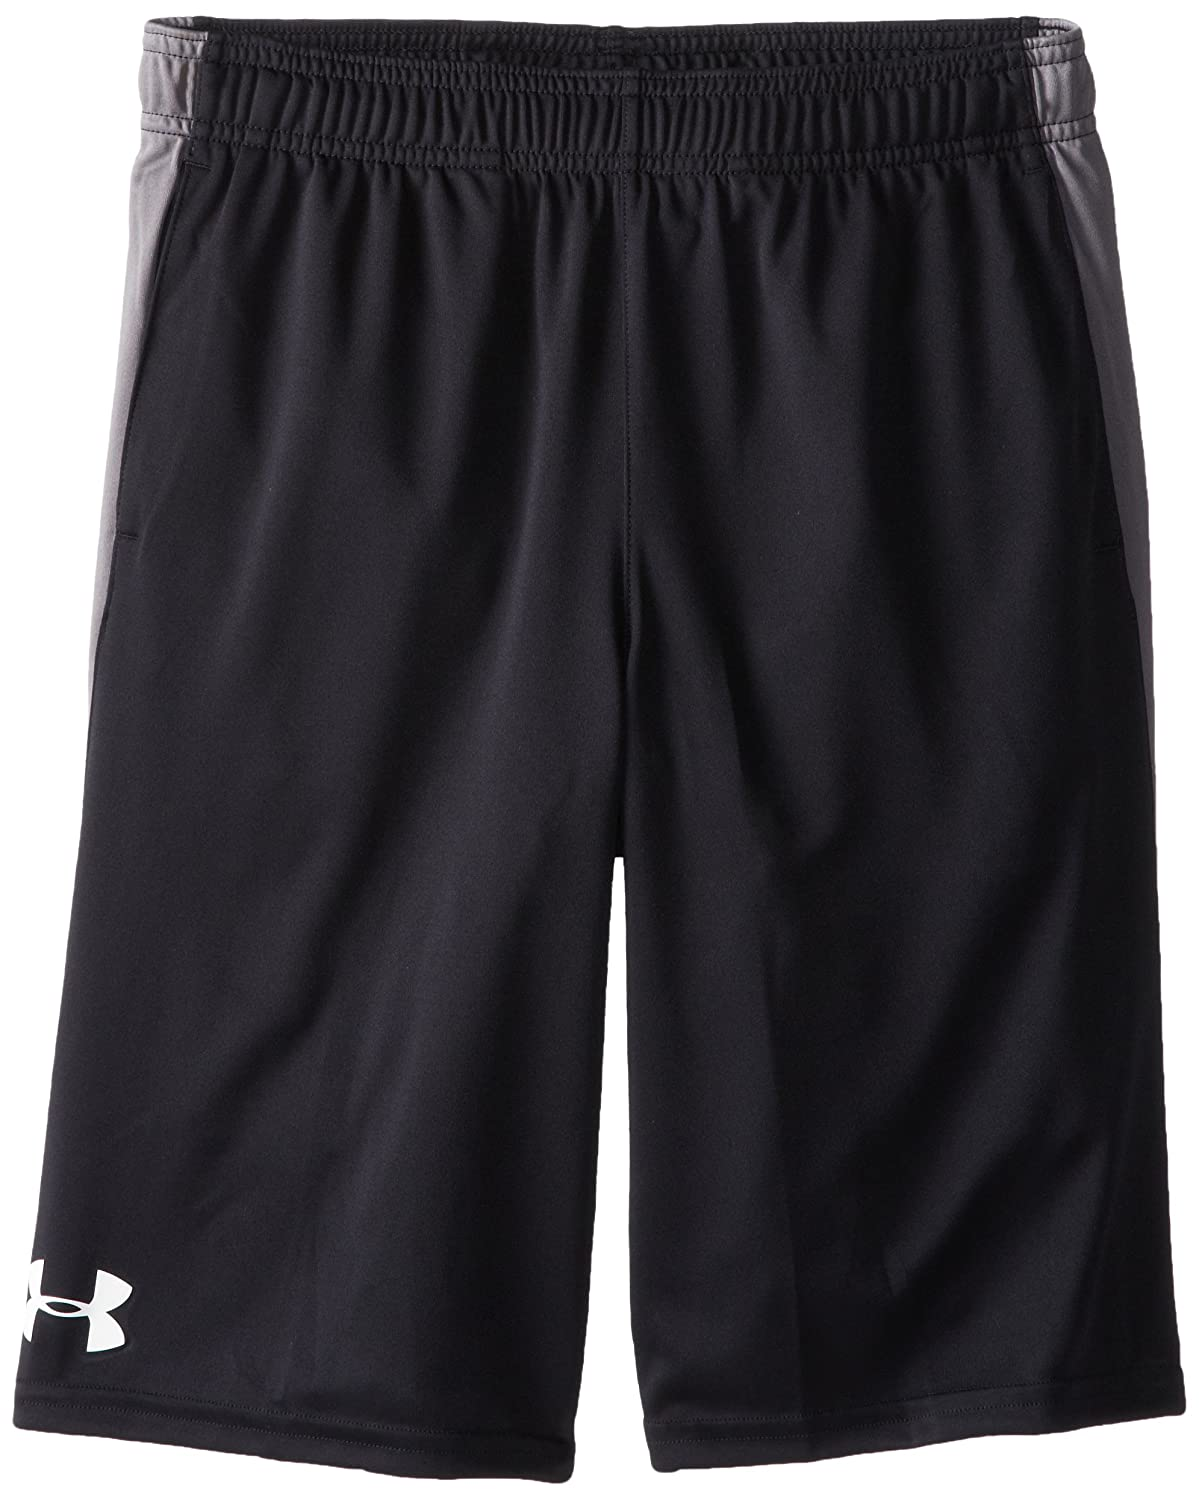 Under Armour Boys' Eliminator Shorts Under Armour Apparel 1253851